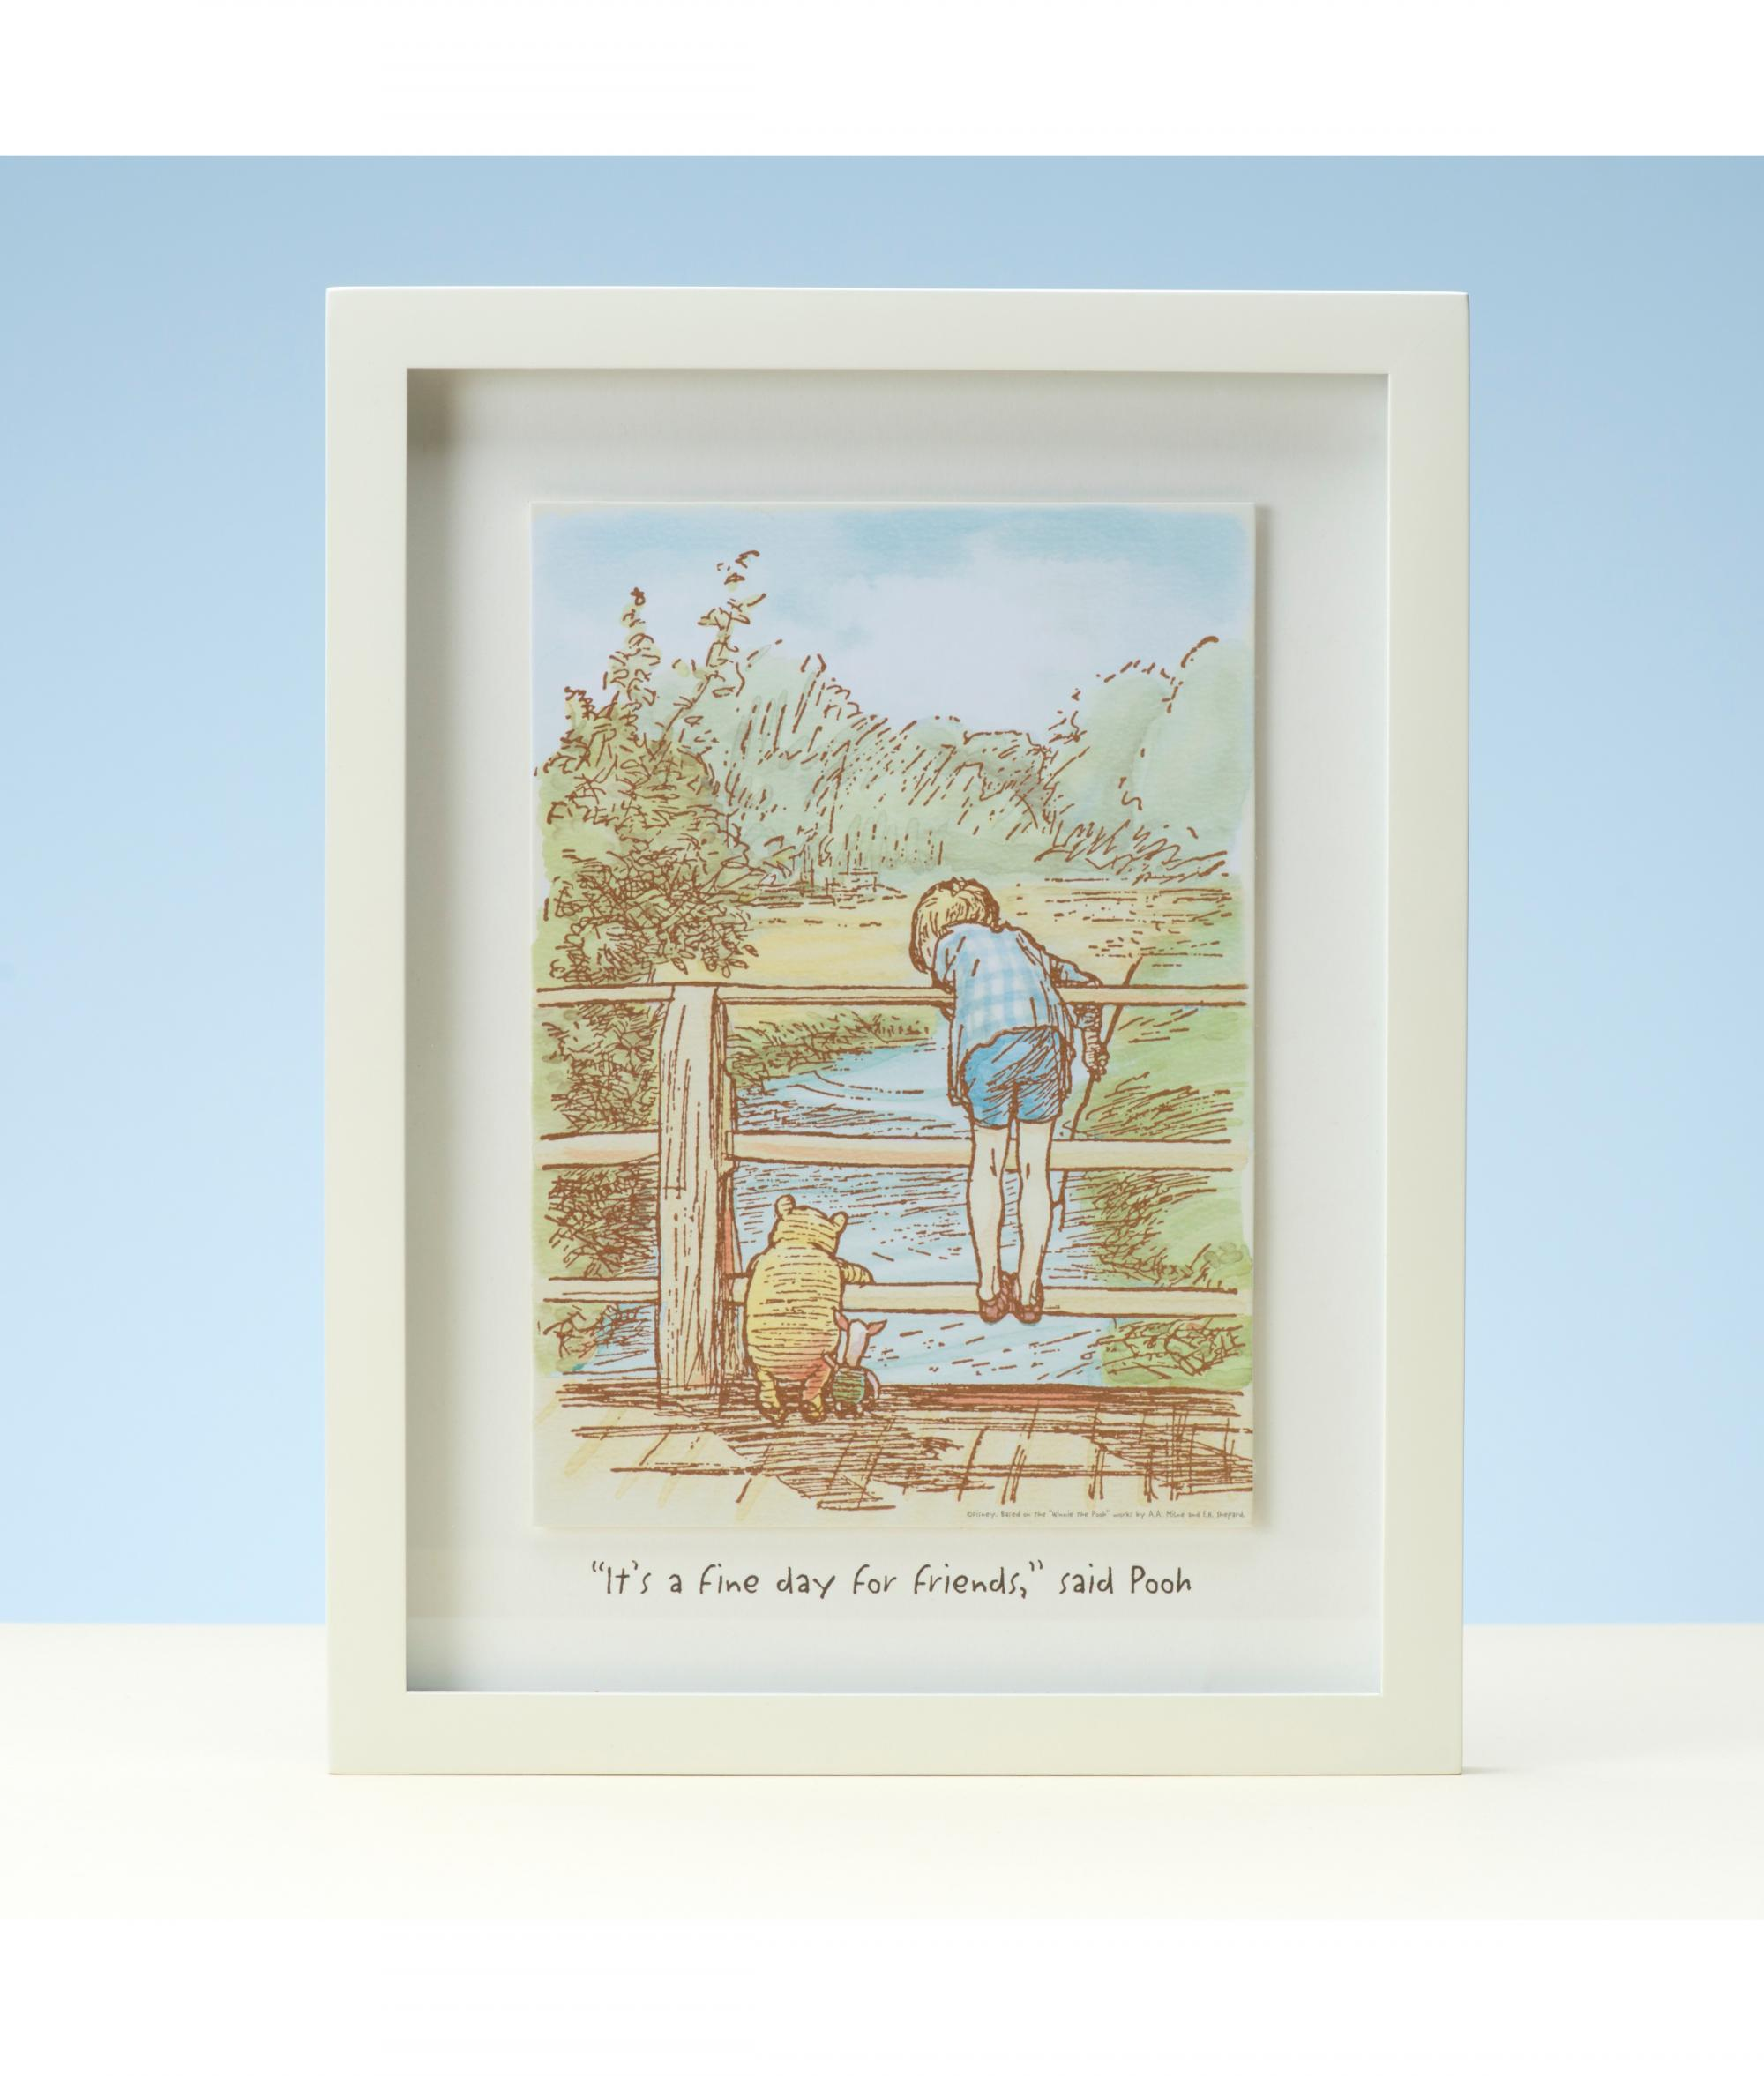 ce81f2d50079 Disney Classic Pooh Heritage Wall Art - Fine Day For Friends ...